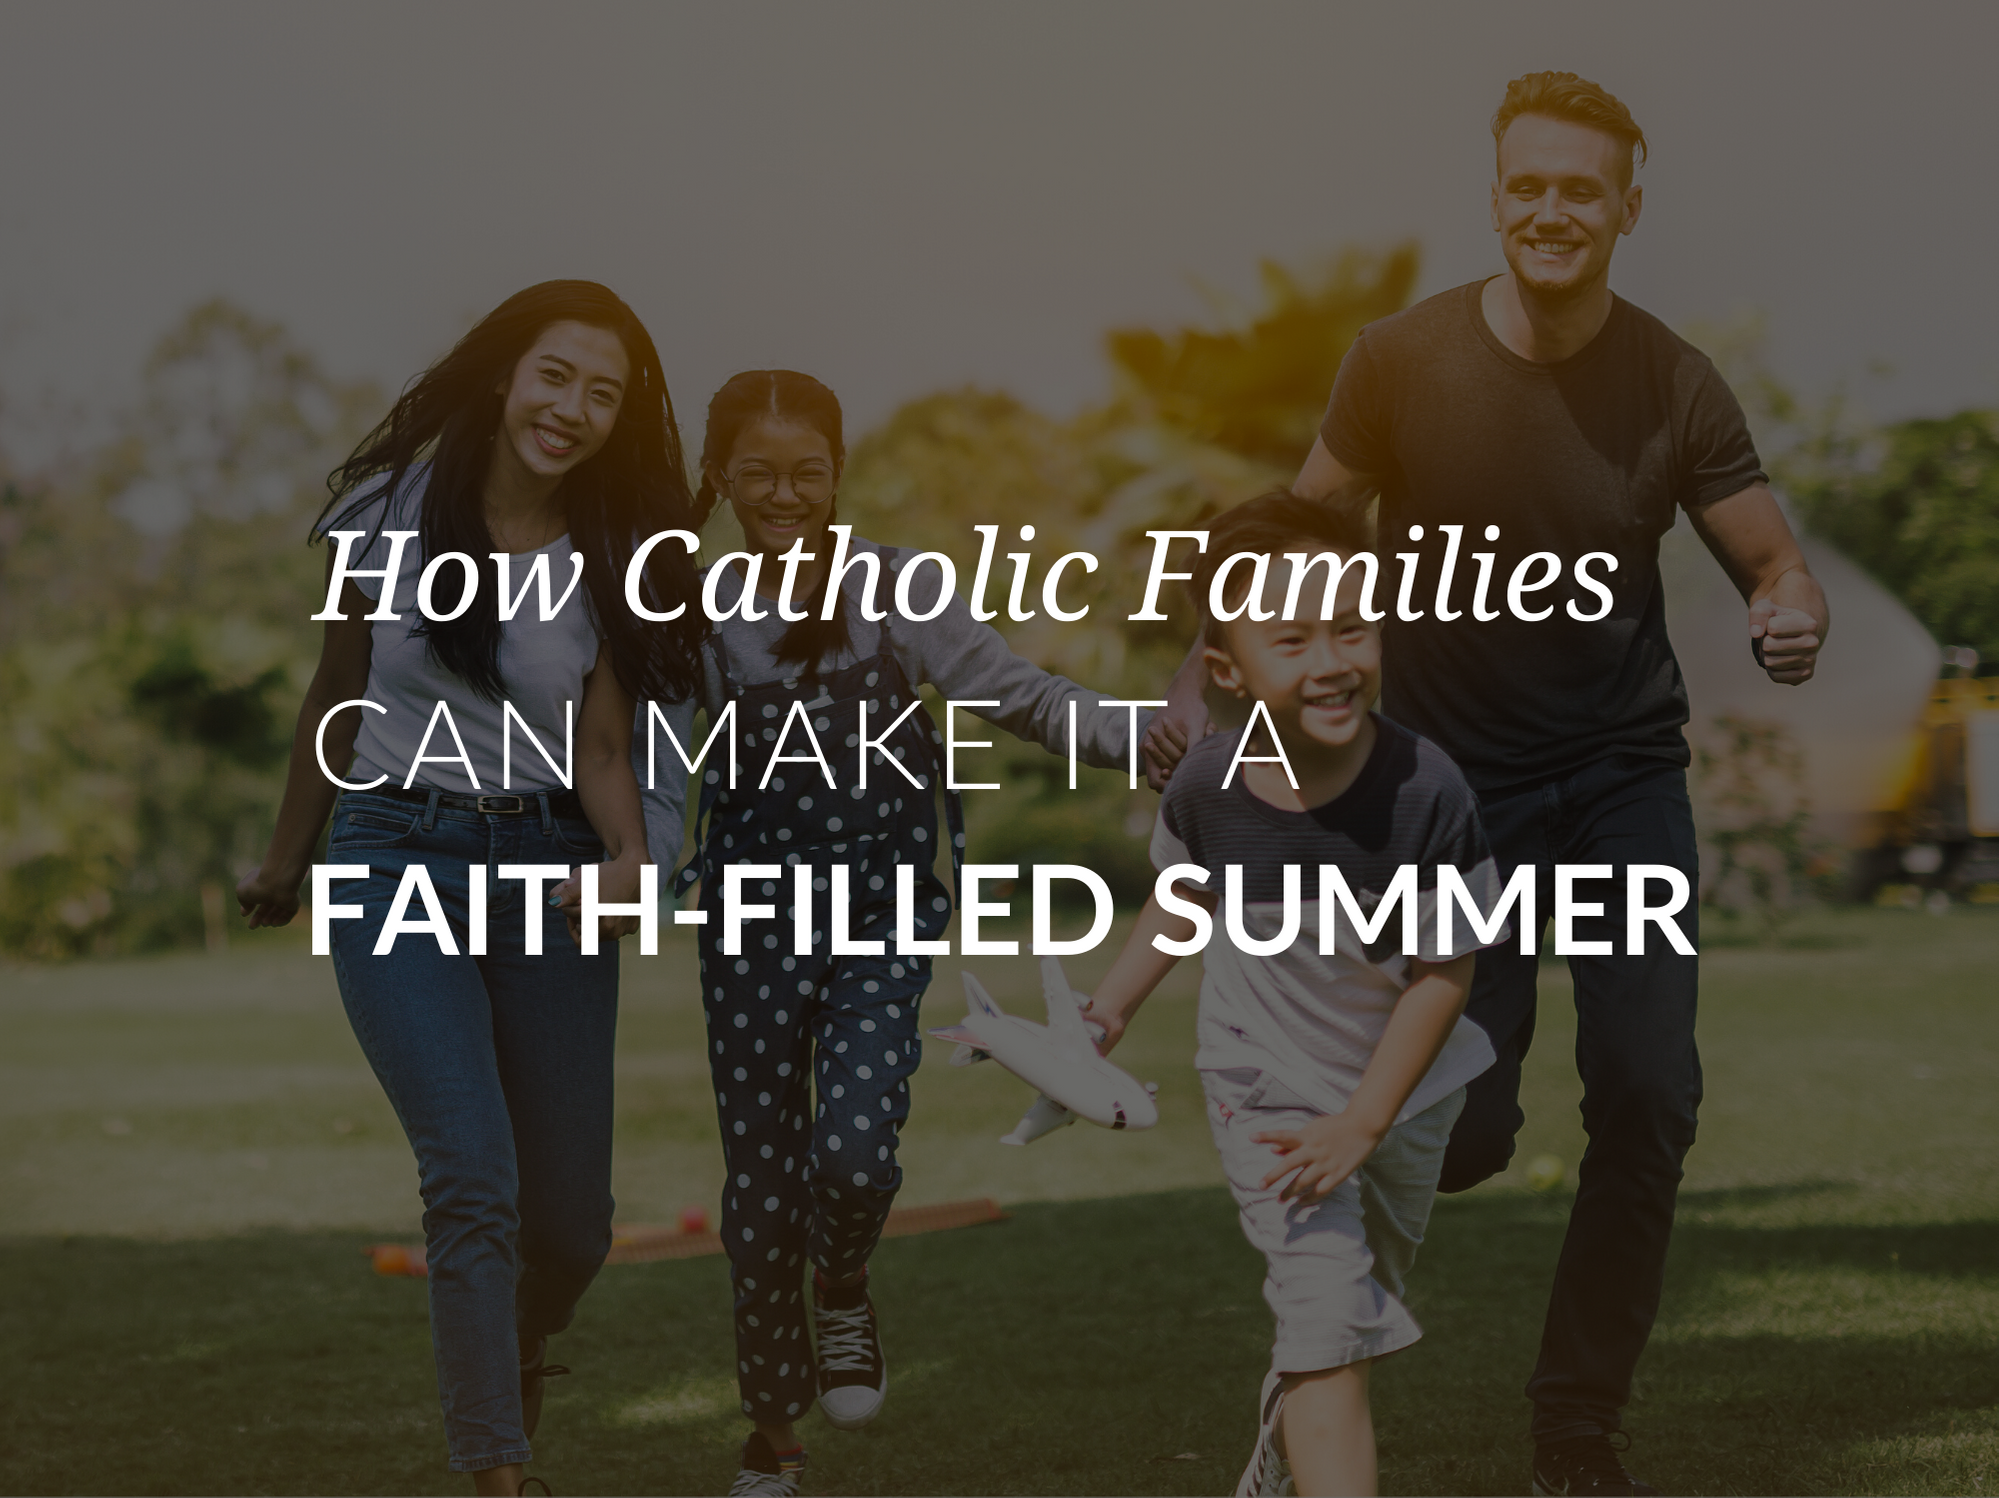 how-catholic-families-can-make-it-a-faith-filled-summer